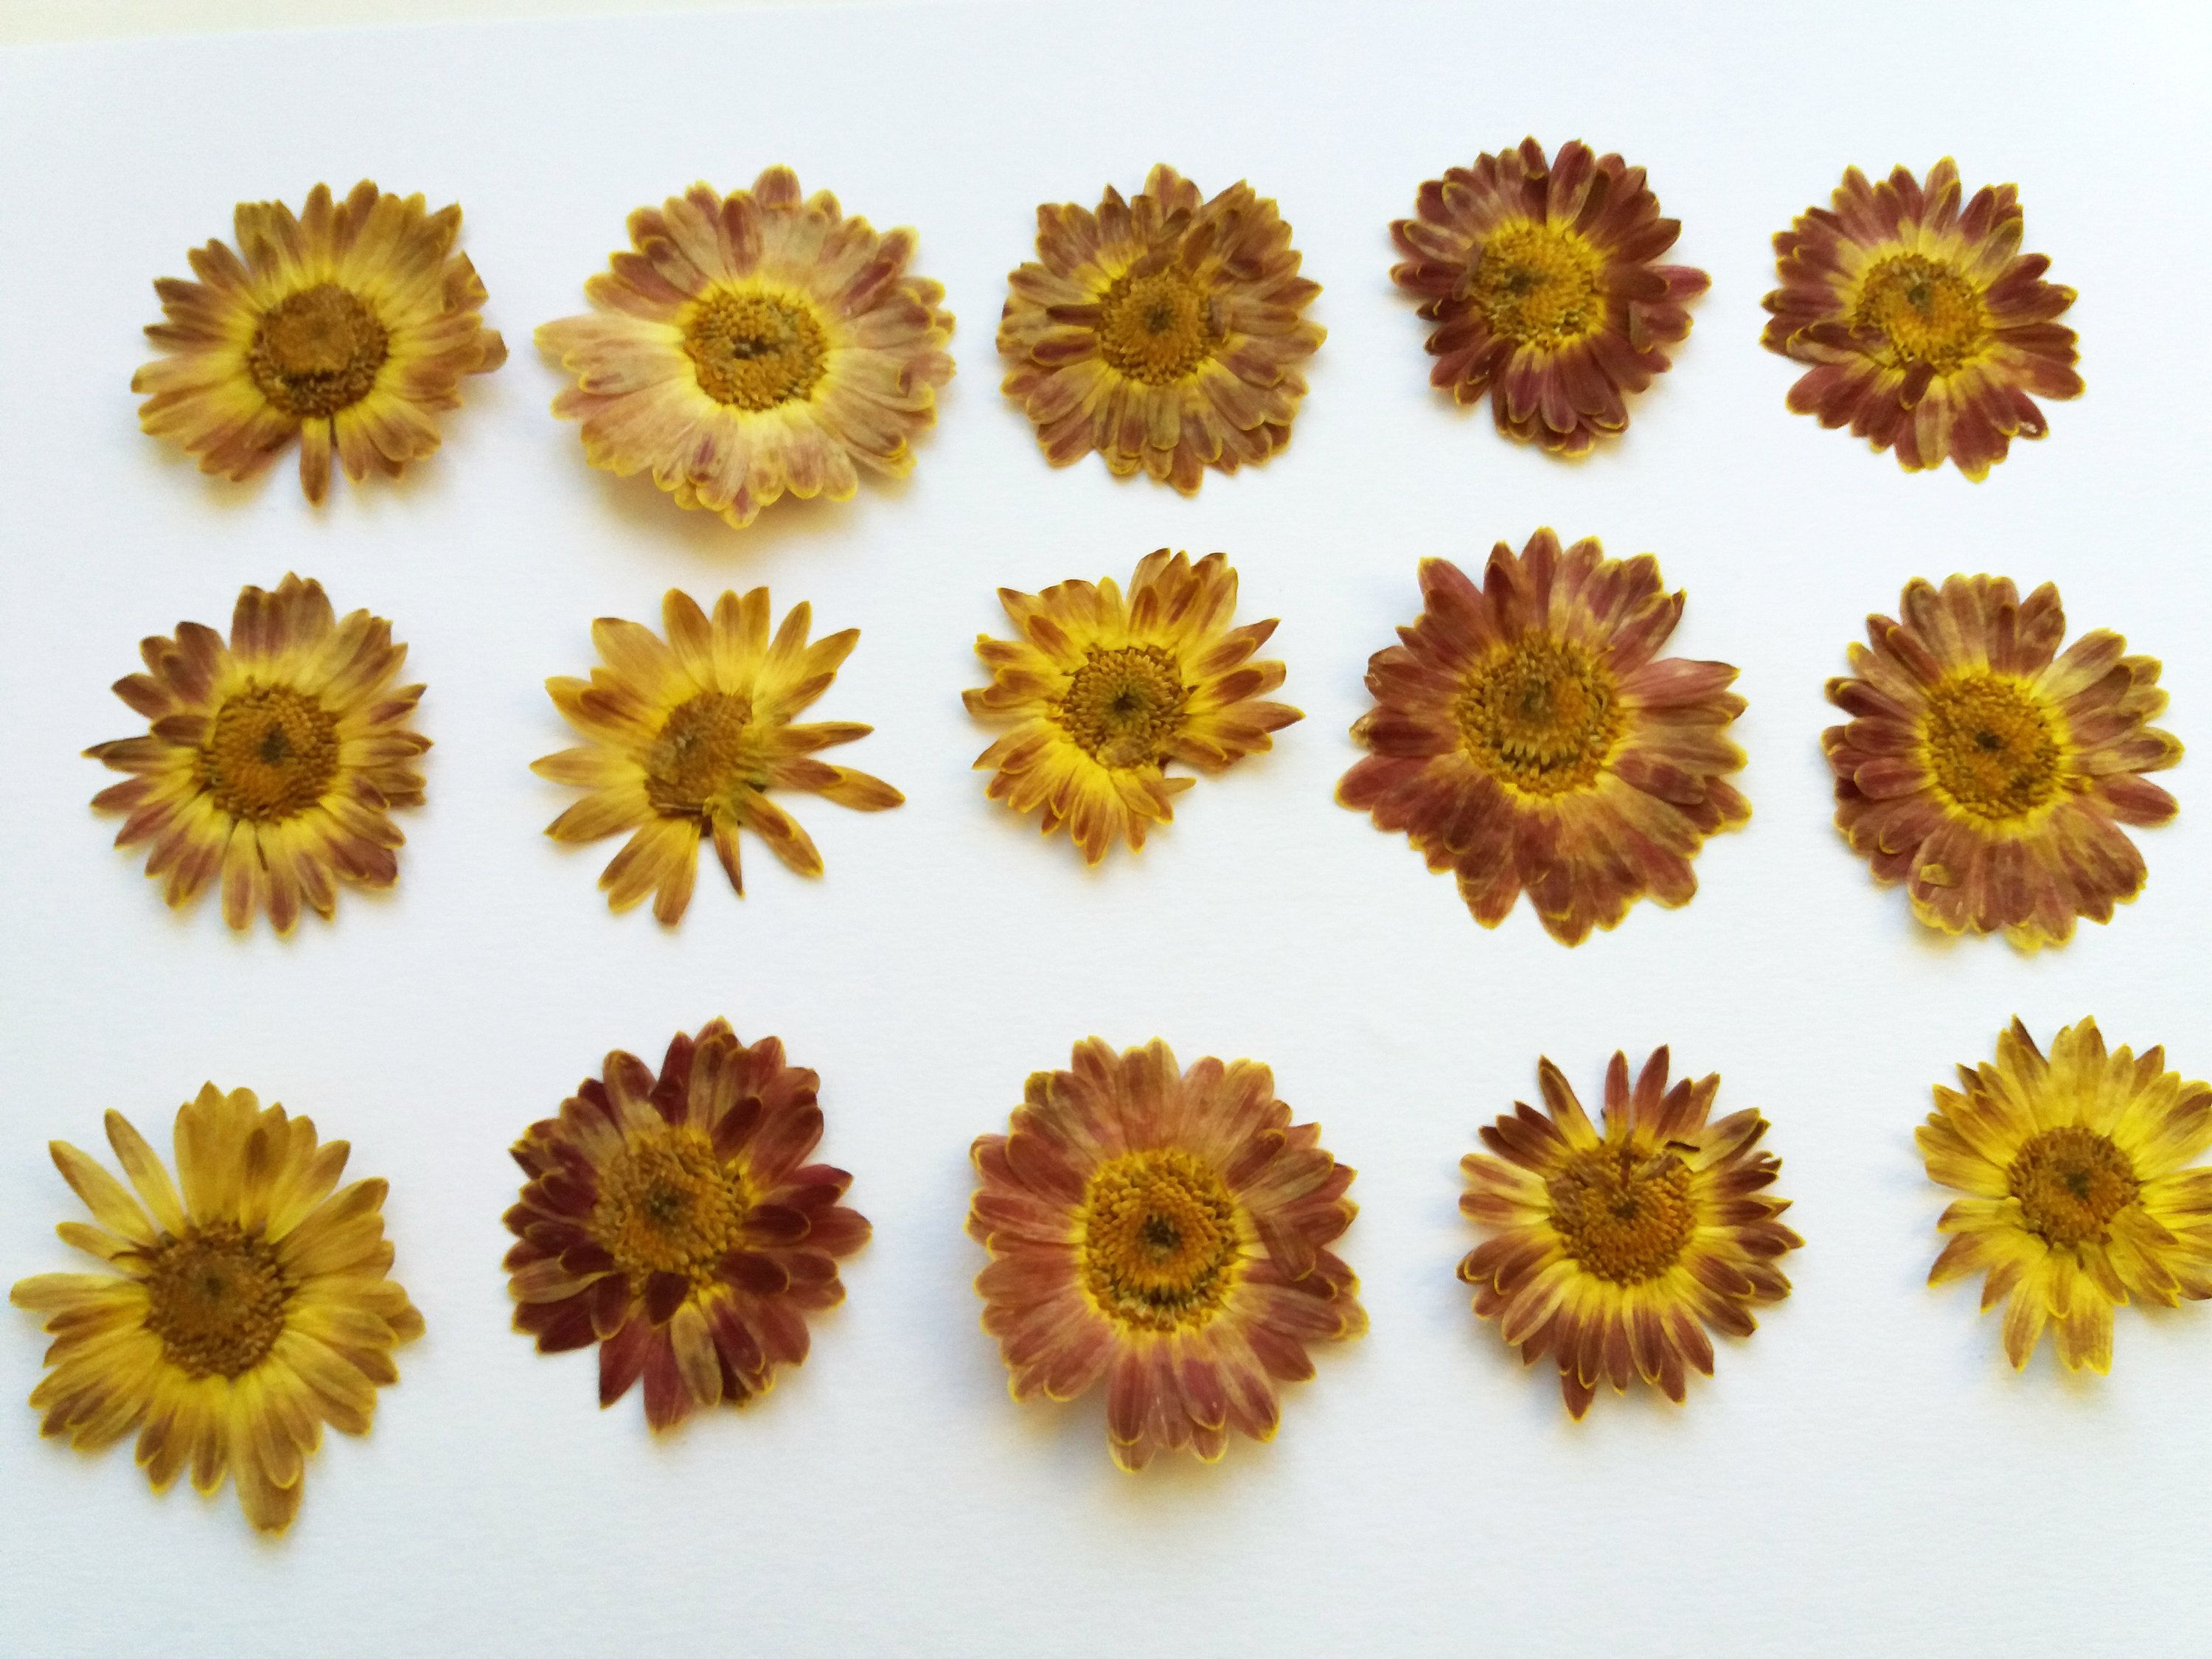 15 Pressed Flowers Chrysanthemums For Crafting Scrapbooking Card Making For Art Real Dried Flowers Natural Orange Chrysanthemums In 2020 Pressed Flowers Dried Flowers Chrysanthemum